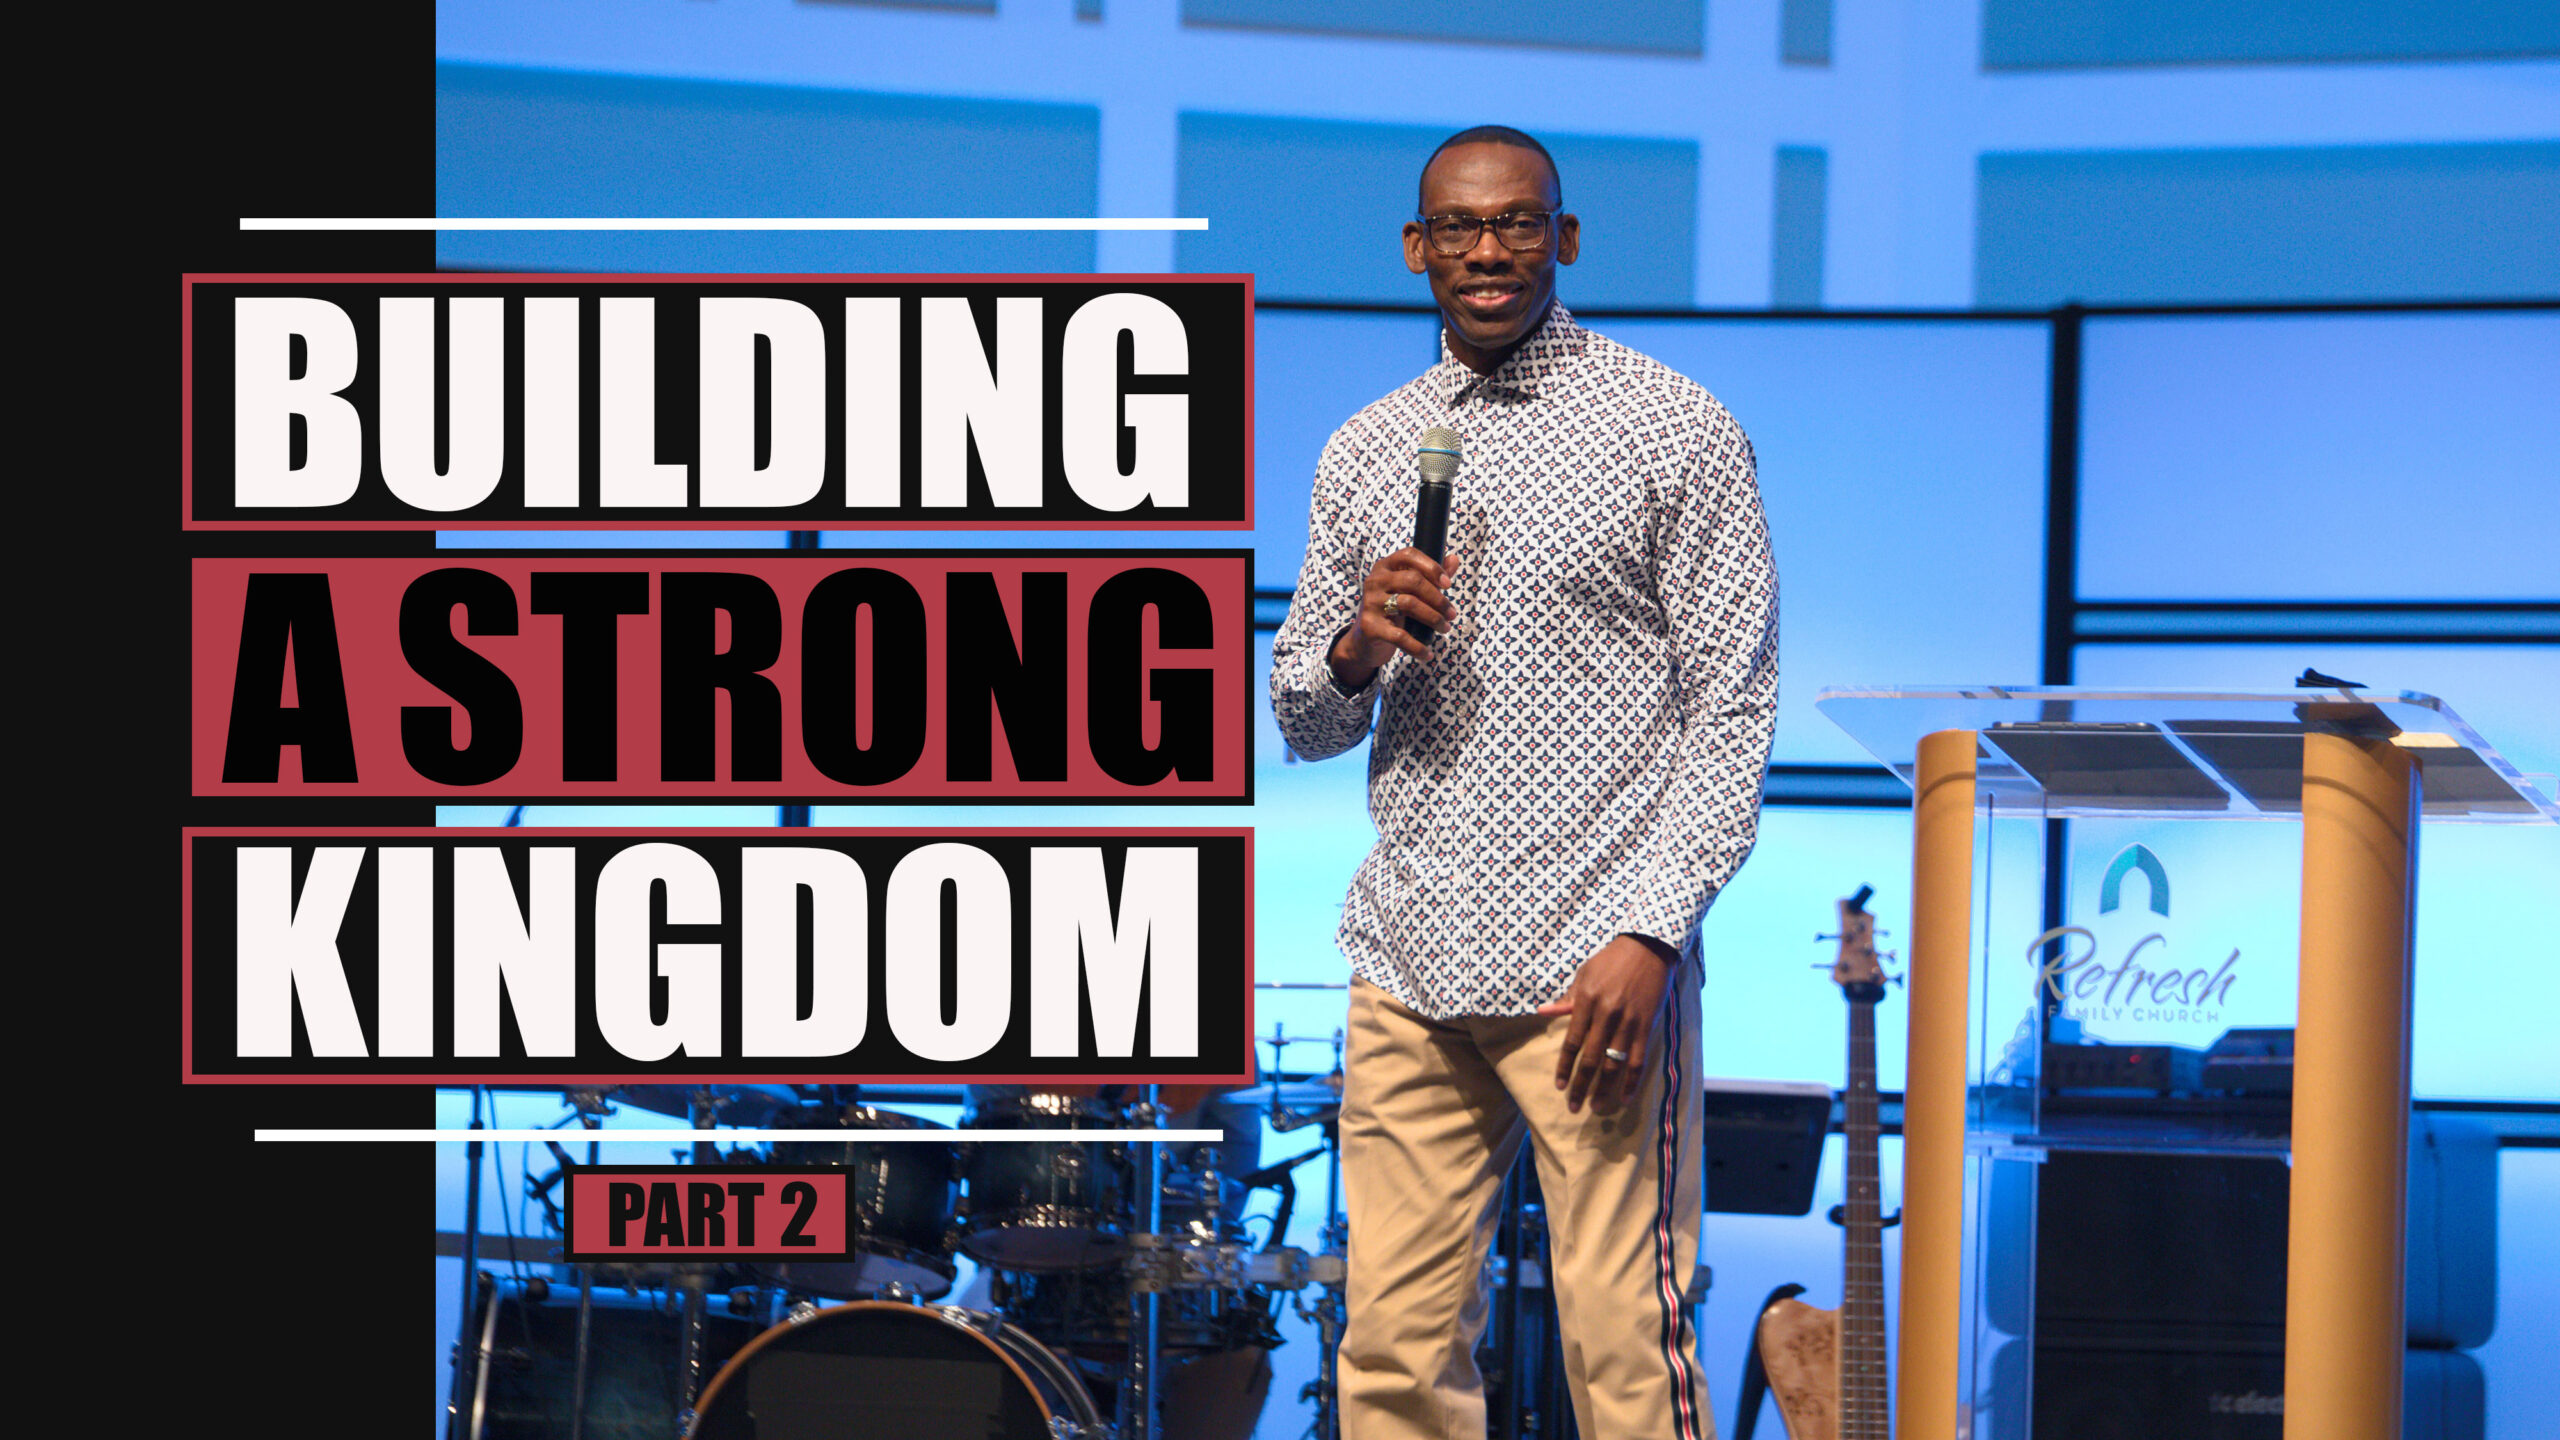 Building A Strong Kingdom Part 2